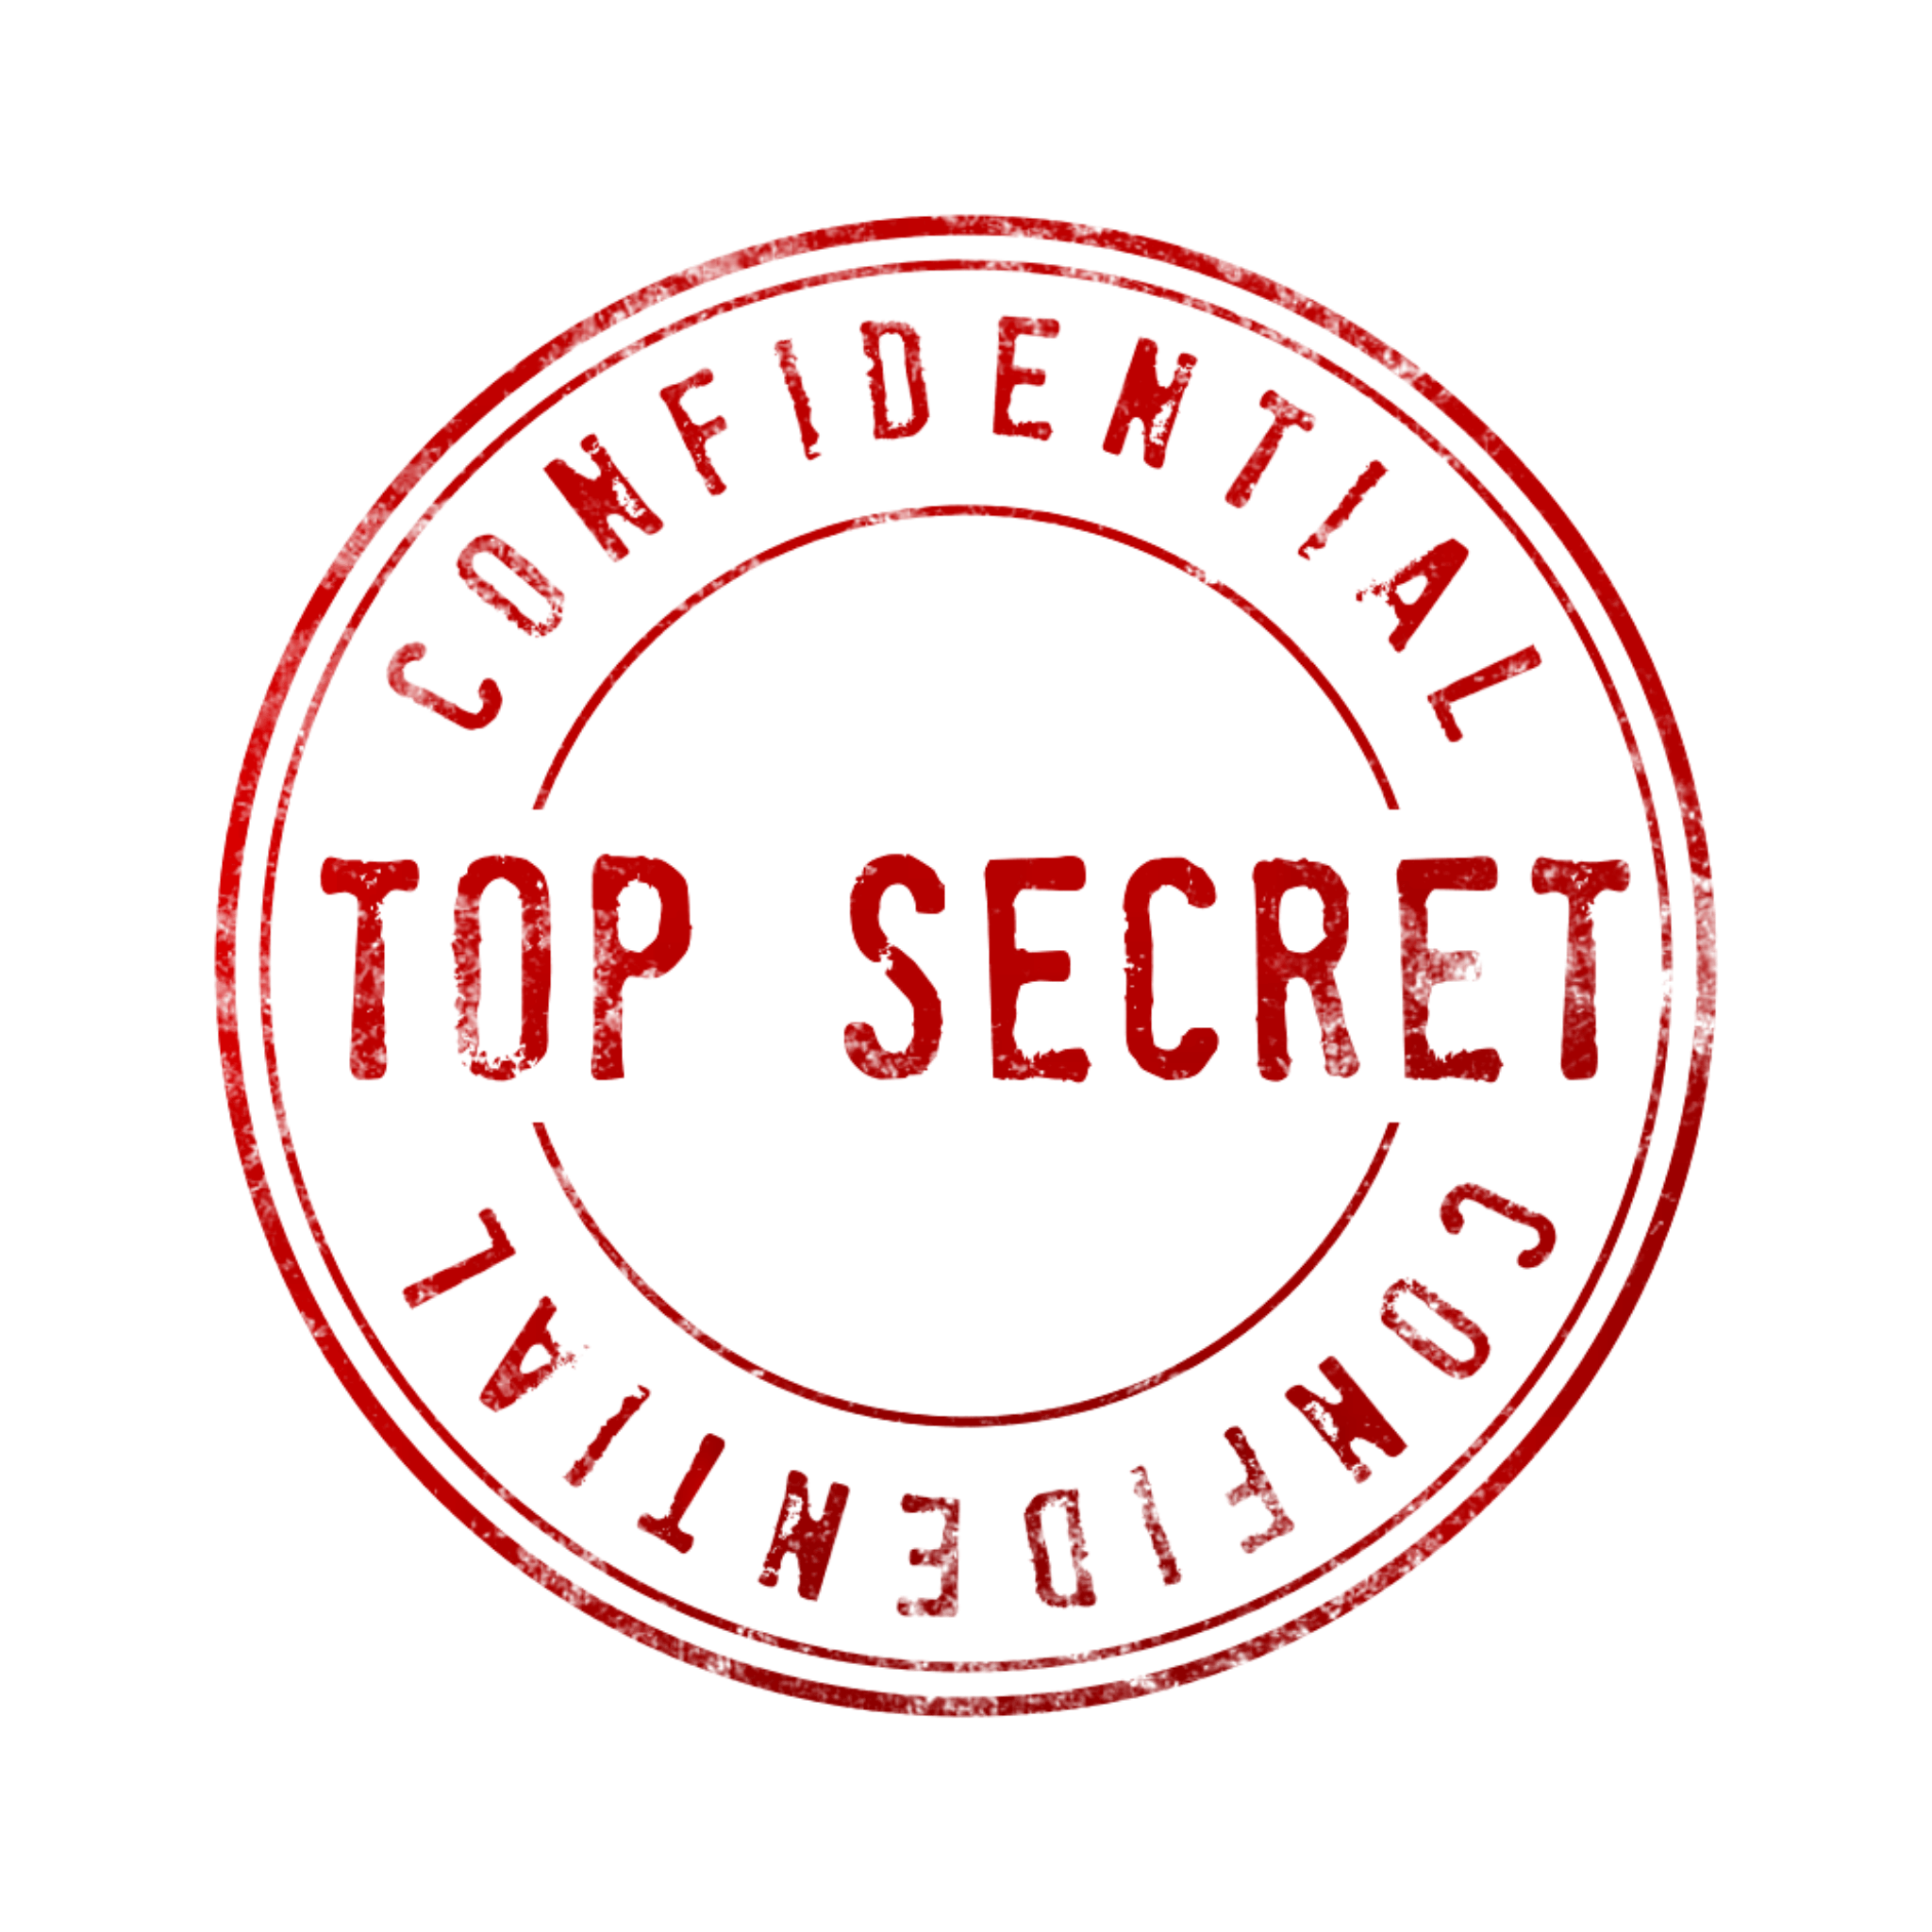 Free stock photo of secret, stamp, military operation, confidential